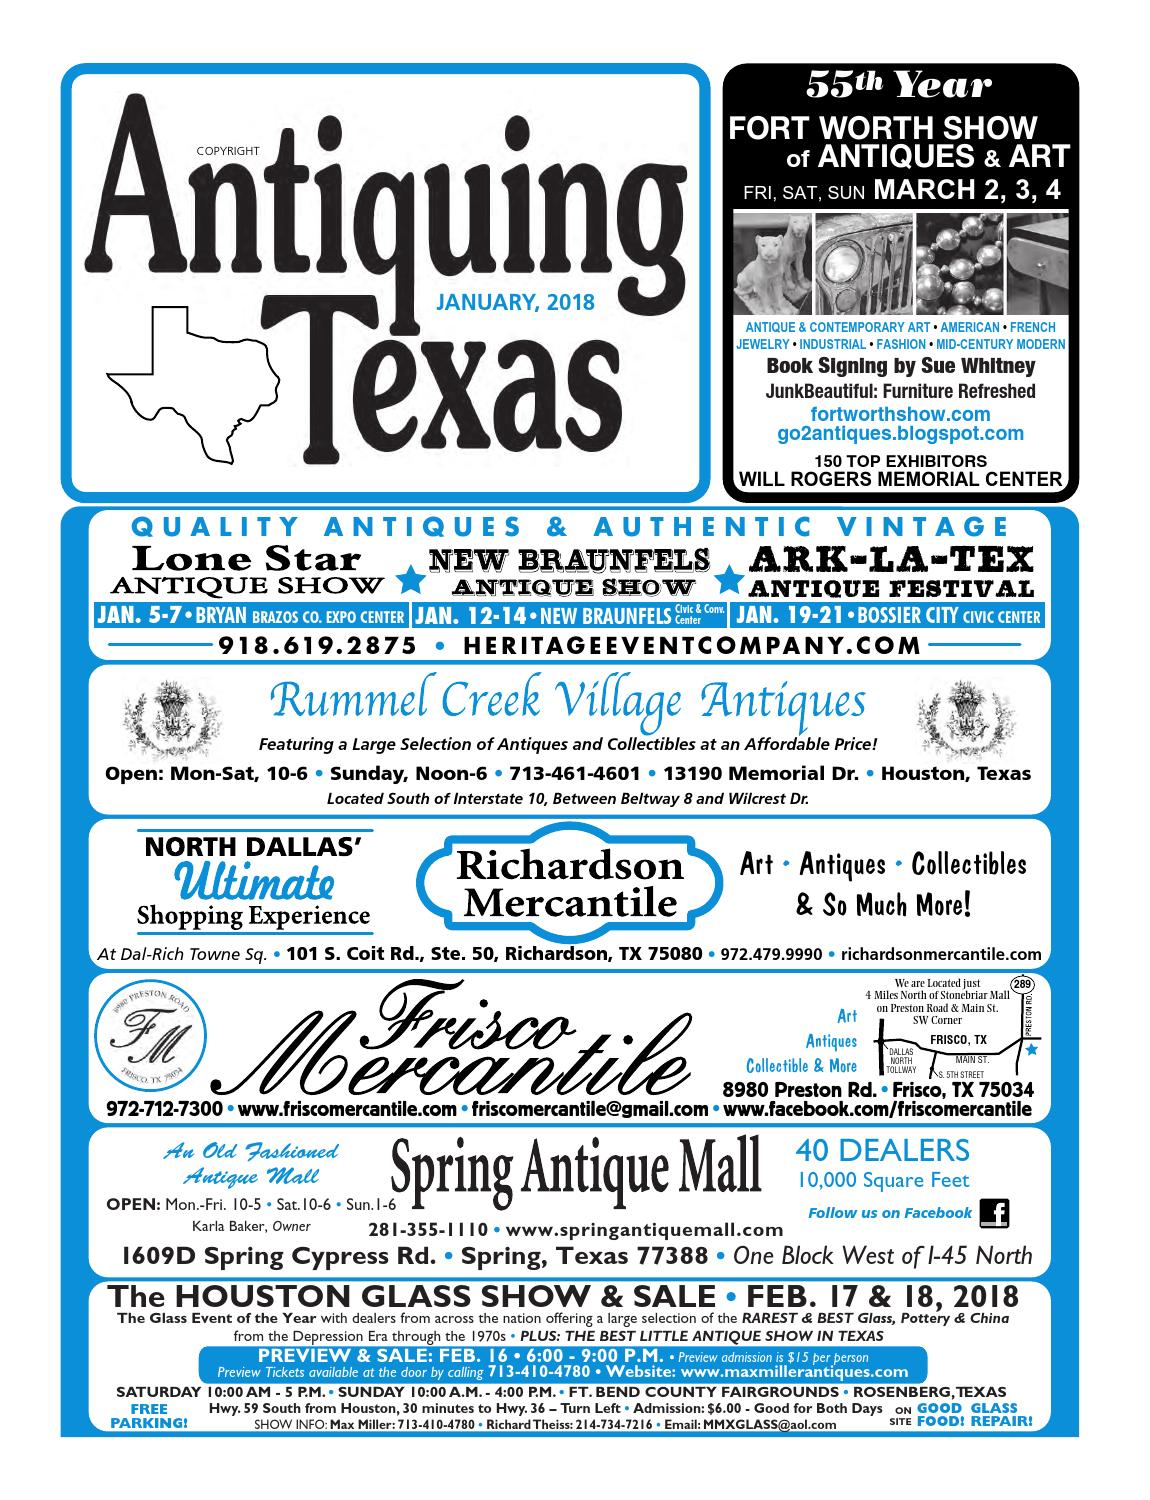 Ant tx upload 1 18 by Antiquing Texas - issuu